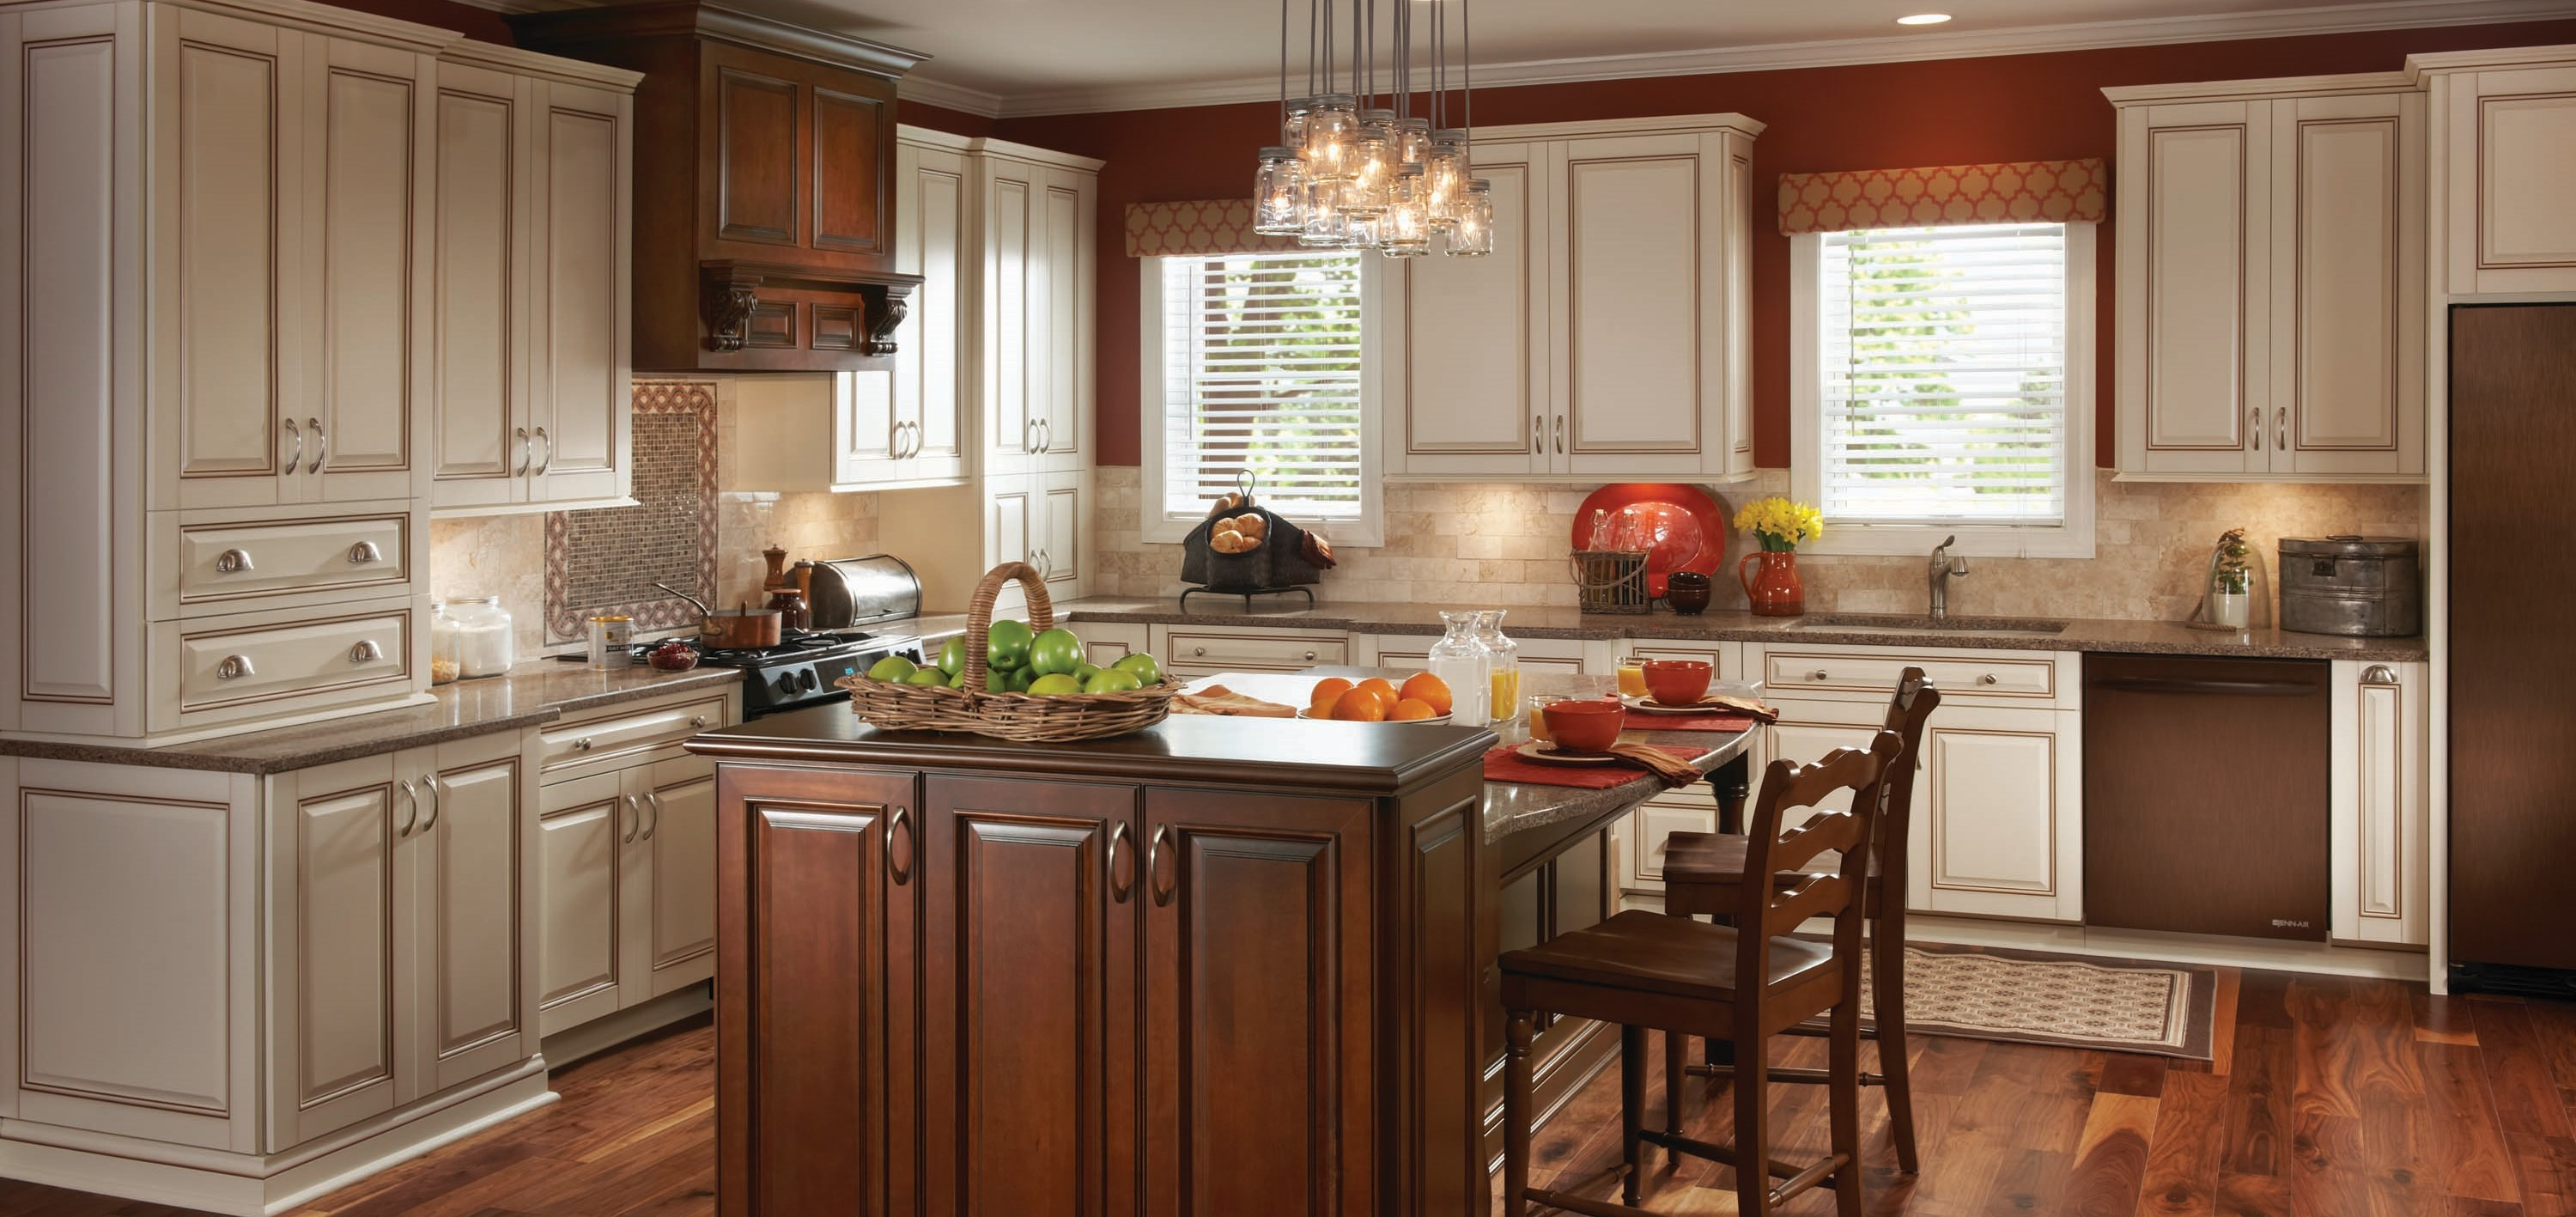 country kitchen indianapolis scratch and dent kitchen cabinets indianapolis cabinets 2816